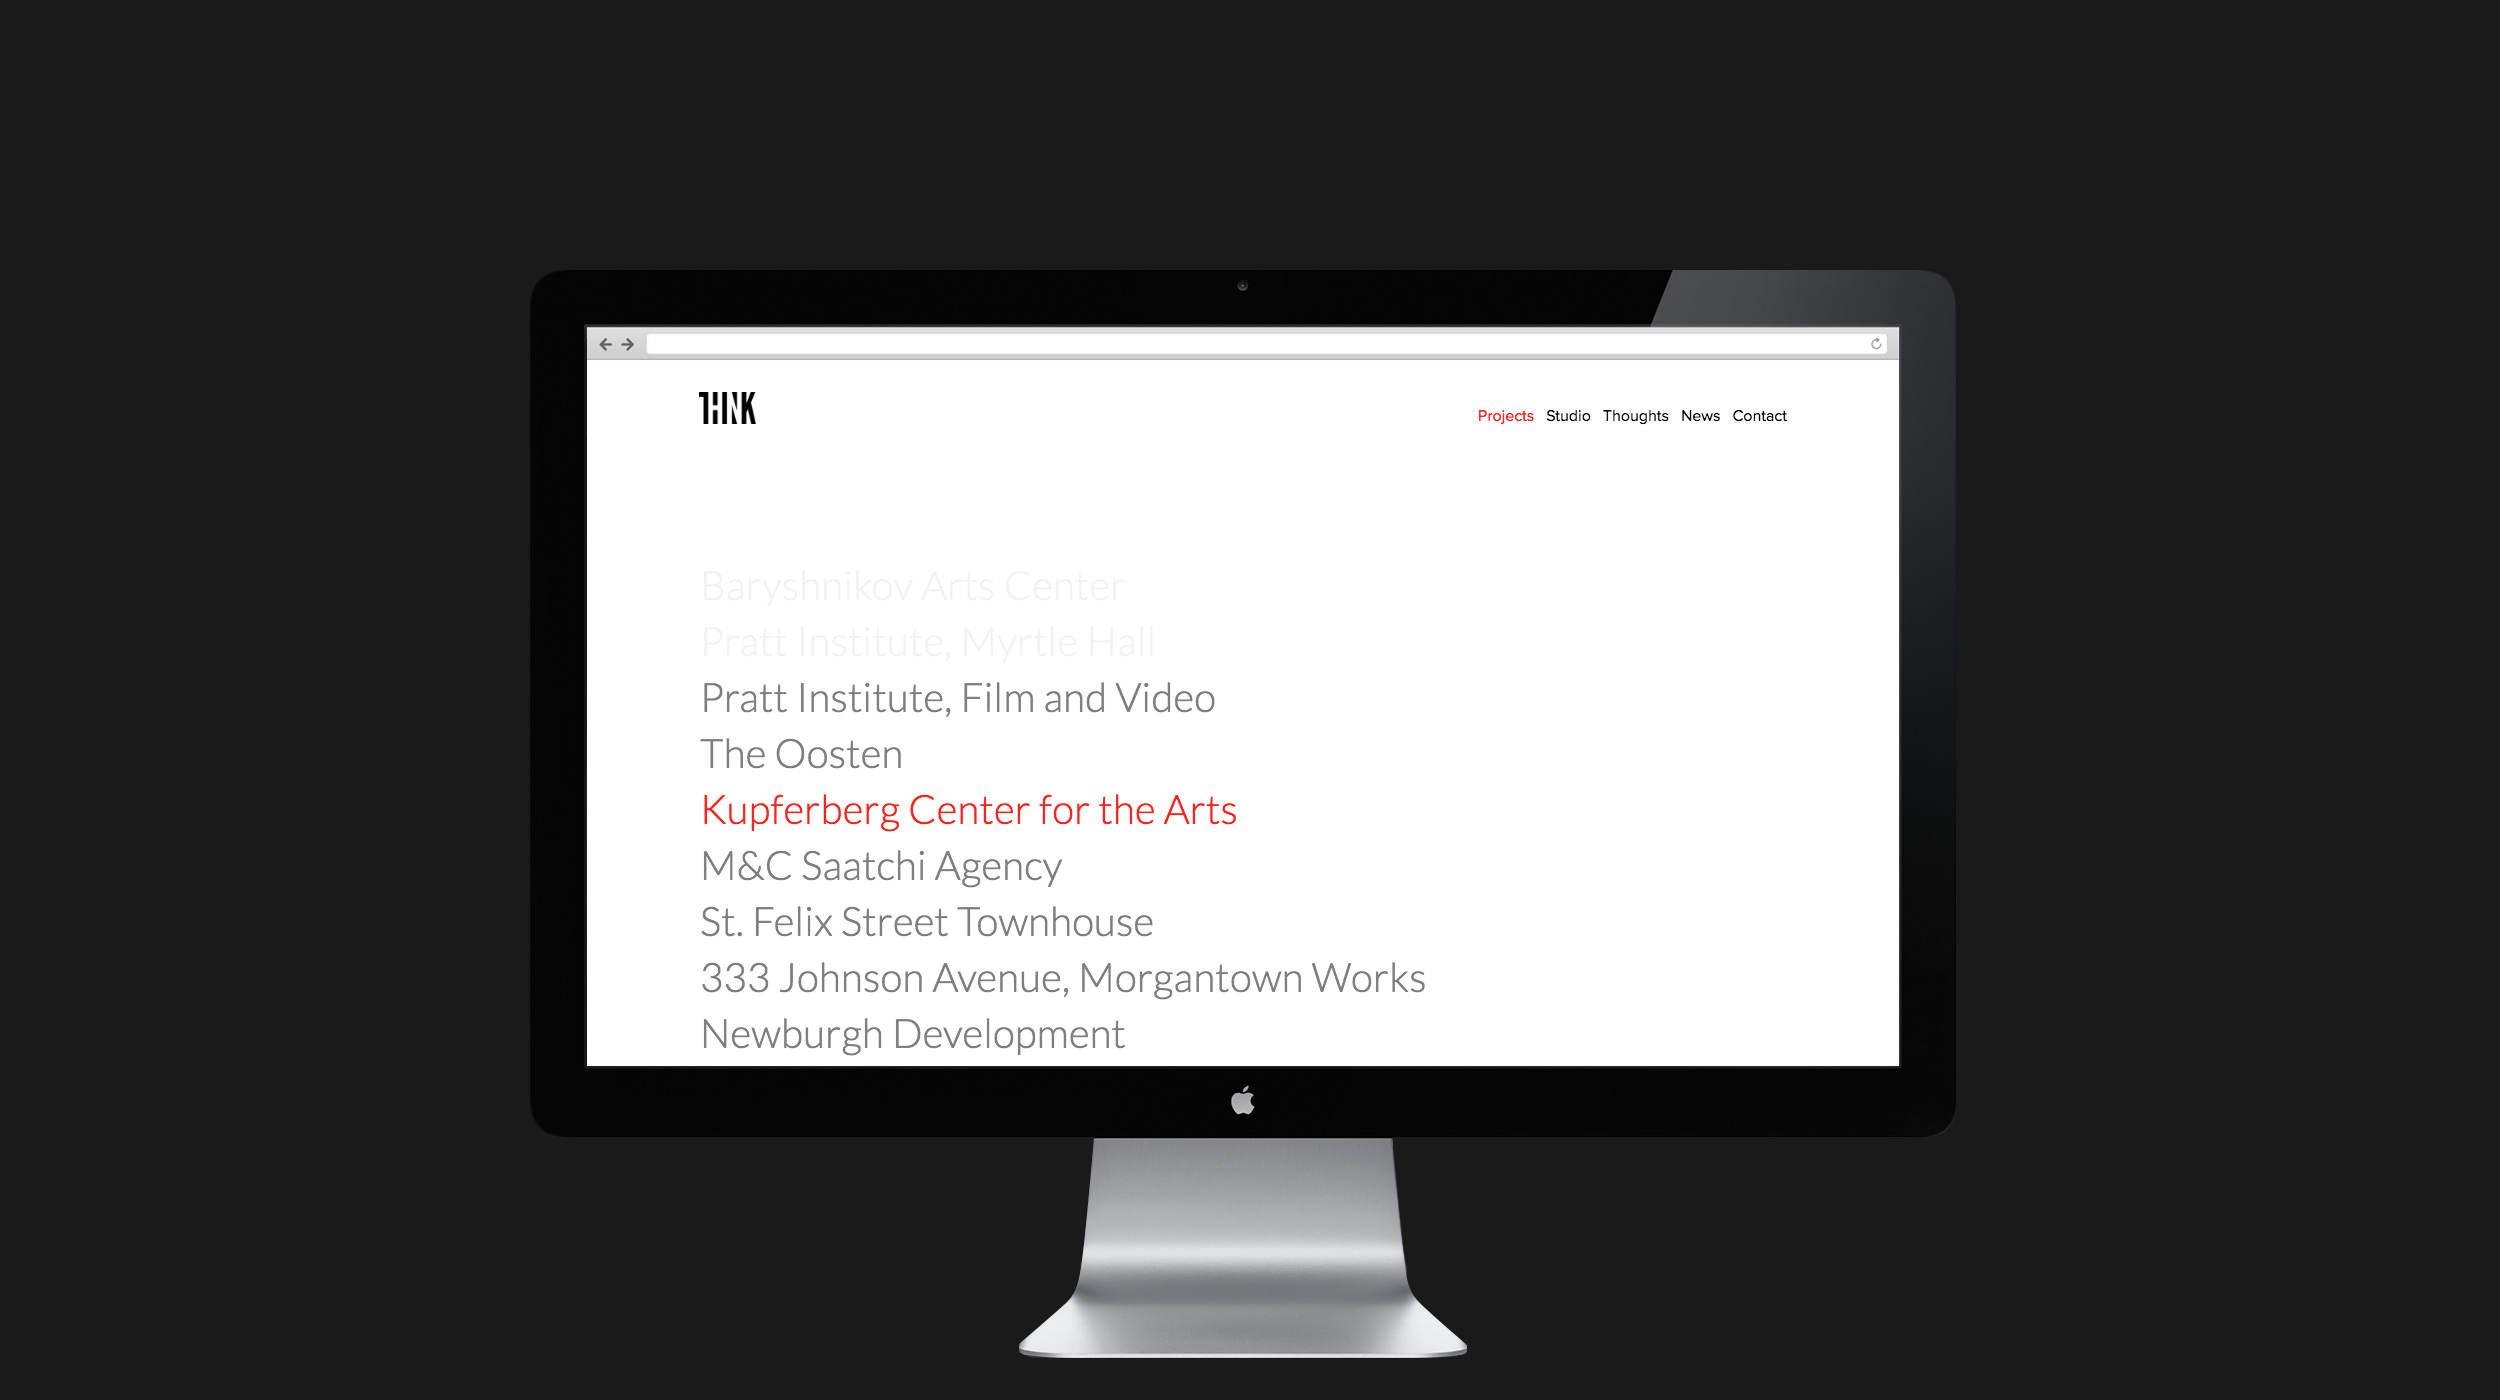 Think! web design, projects